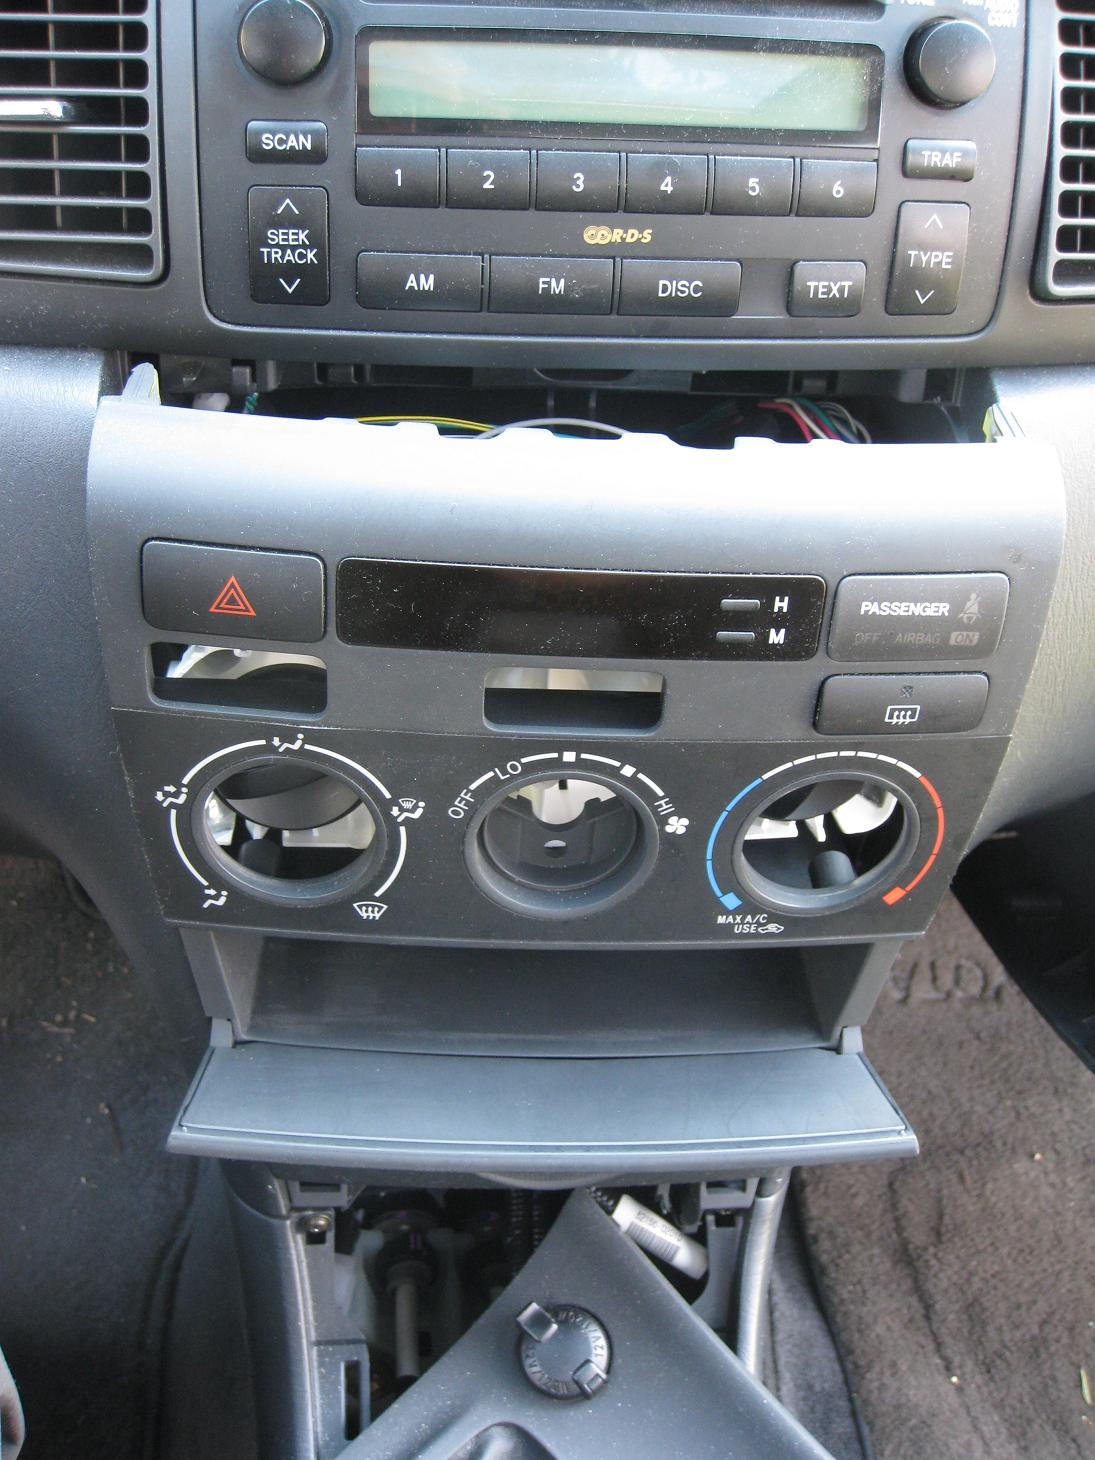 2006 Toyota Corolla Radio Fuse Location